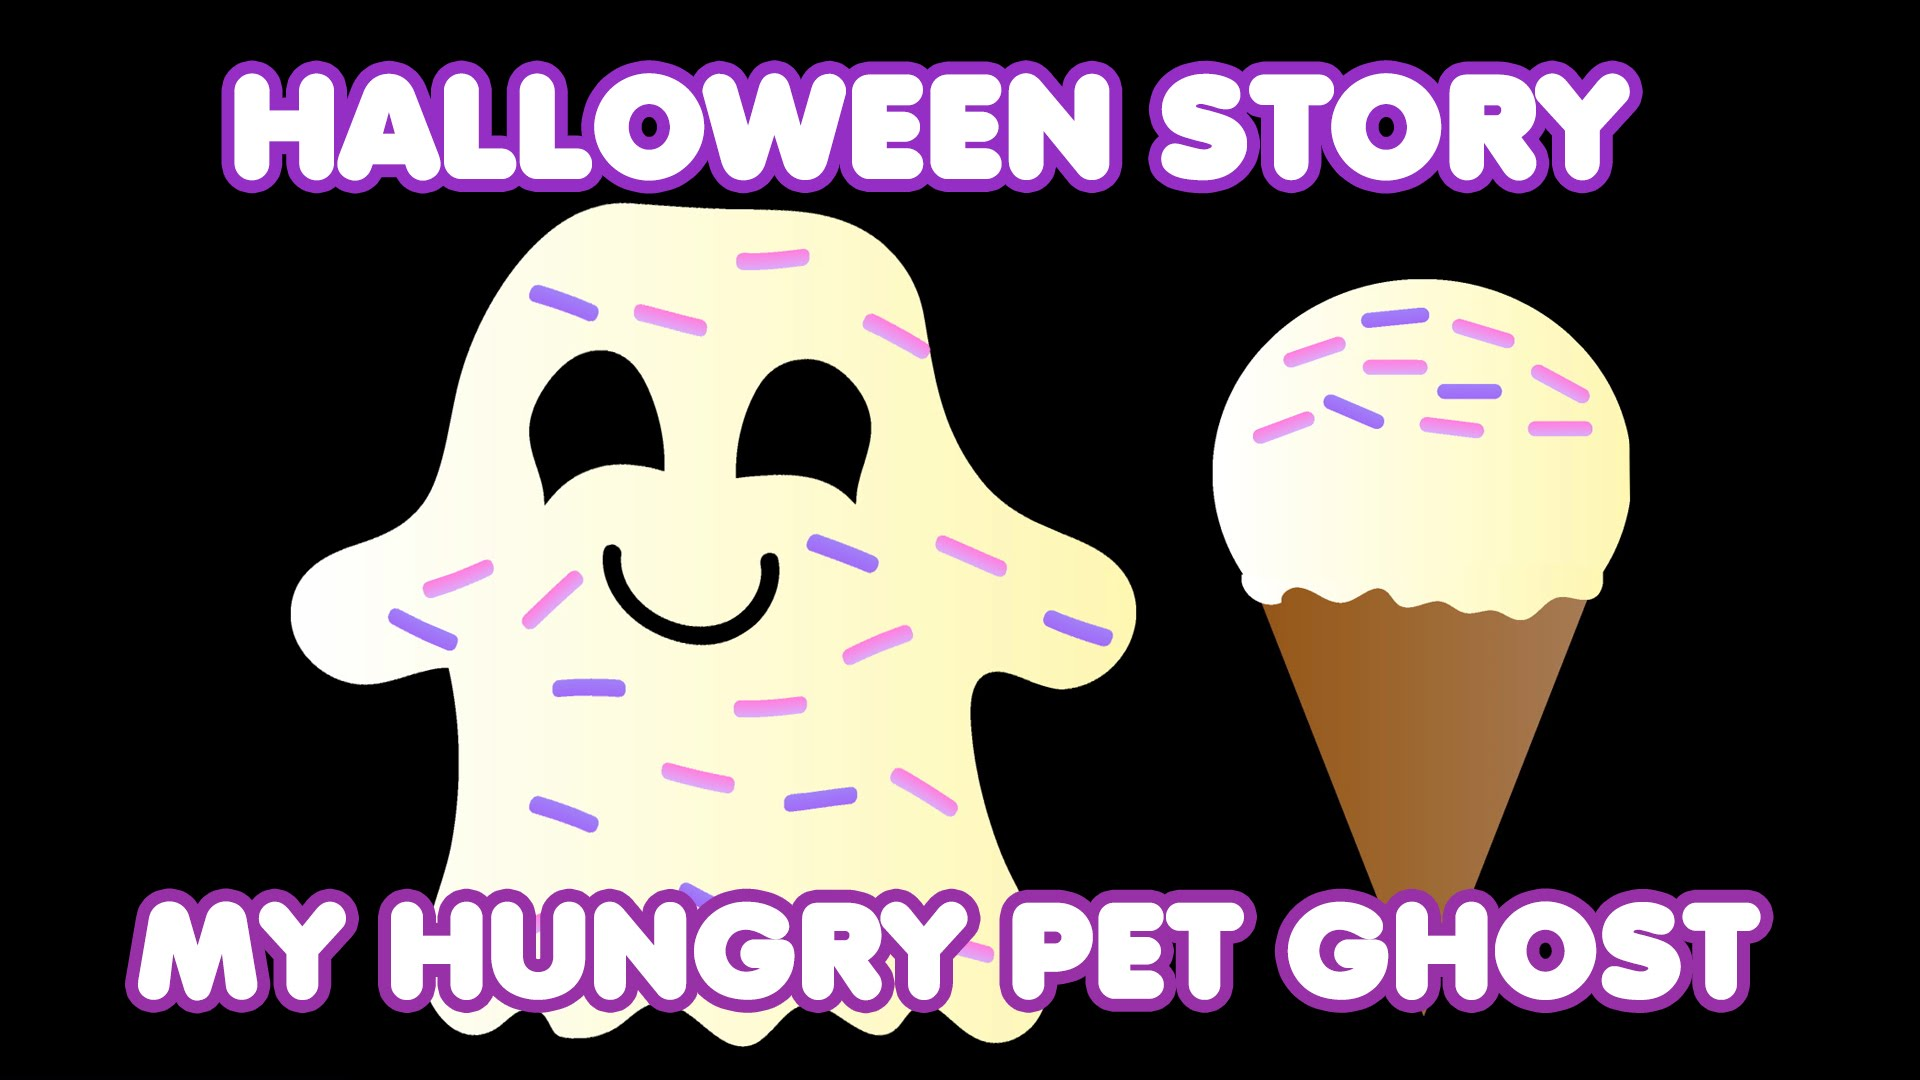 Haunted clipart spooky story. Halloween for kids my